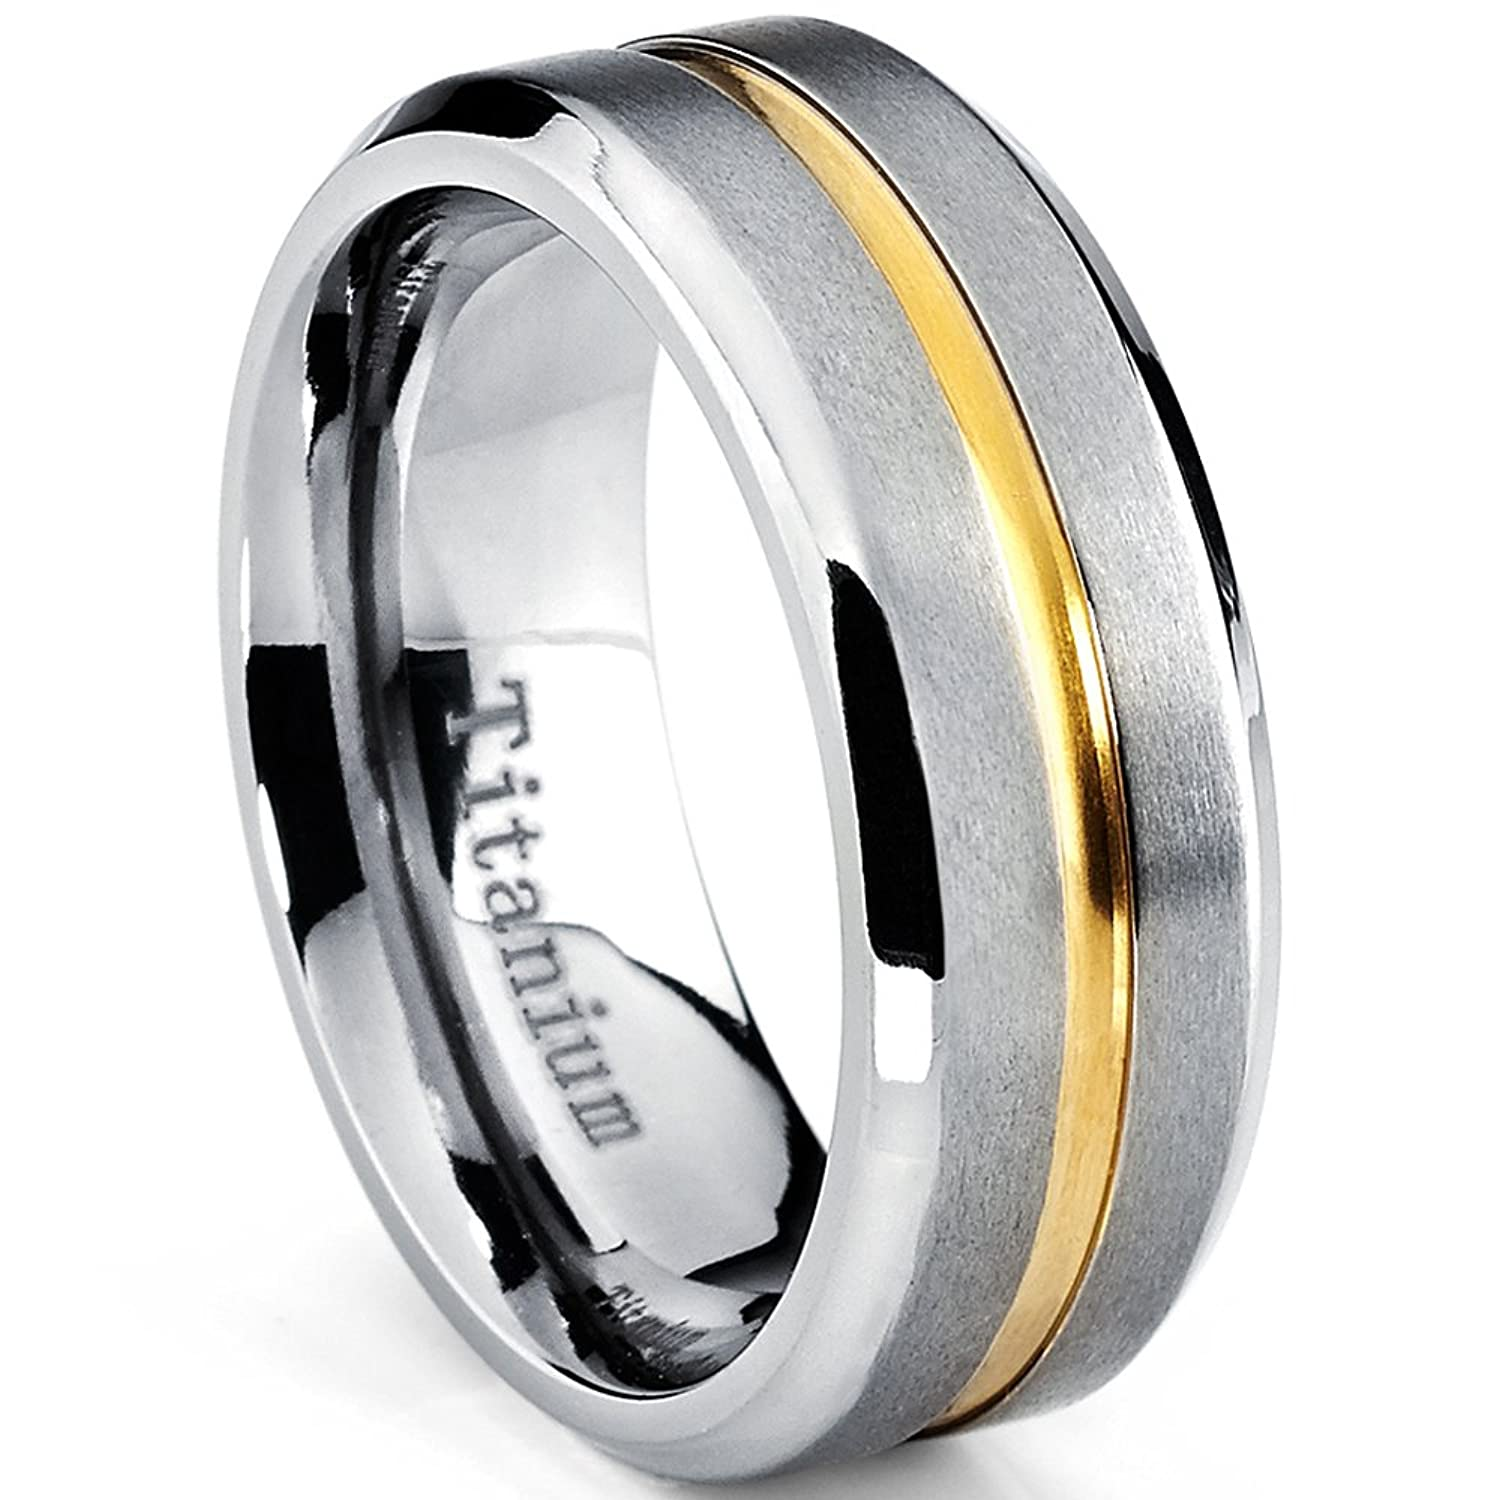 Mens Goldtone Plated Grooved Titanium Wedding Band Ring Comfort Fit 8mm Sizes 7 To 15